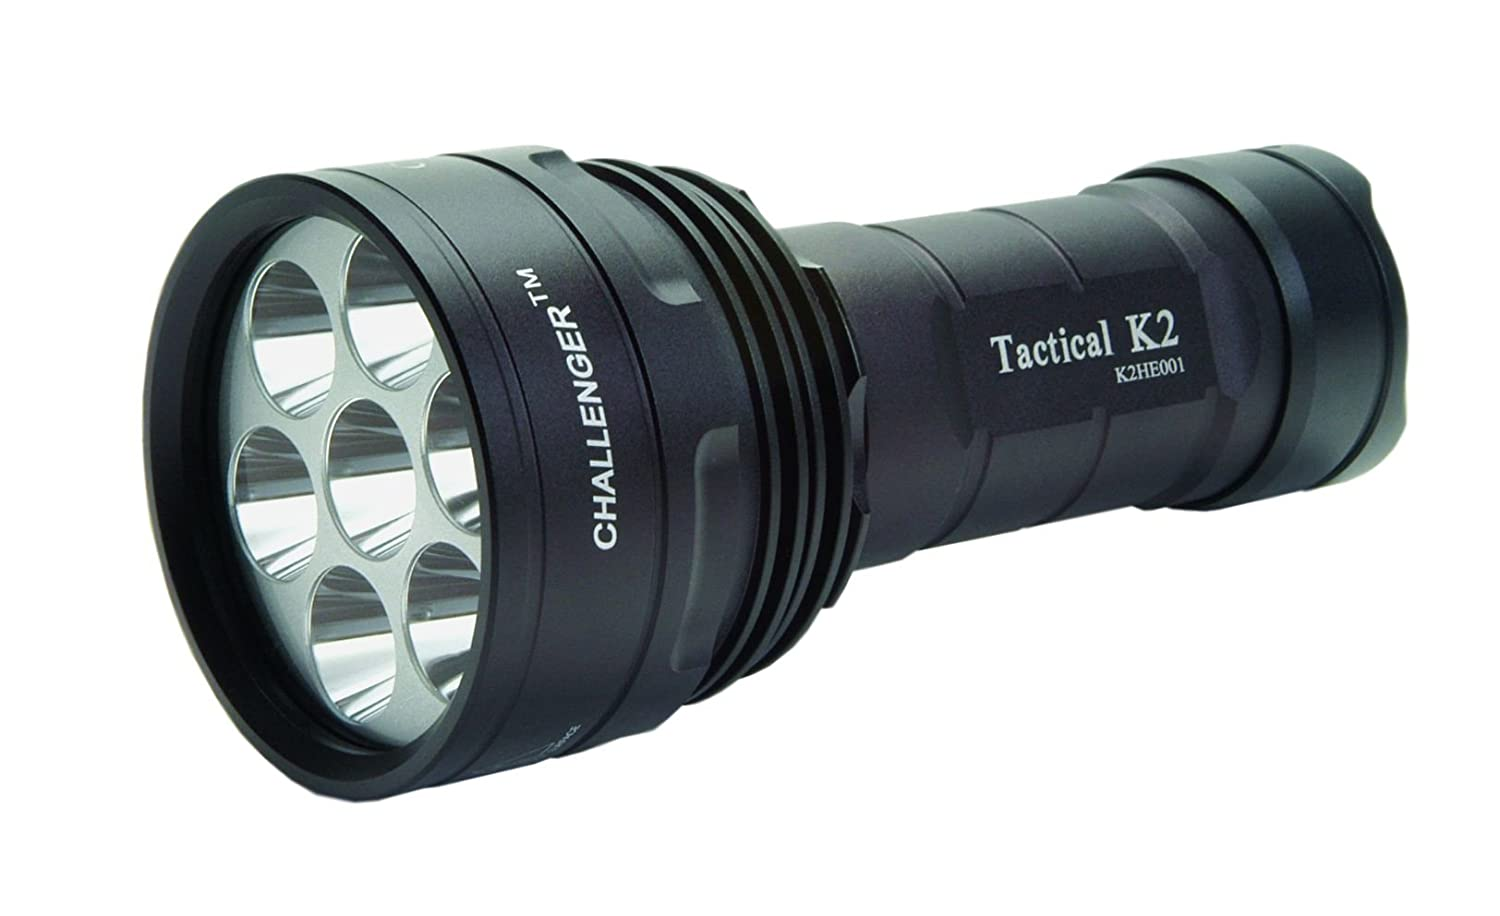 MicroFire Challenger L500R Tactical Flashlight LED + K1N Li-Ion battery pack 2150mAh + charger Hochleistungs-Taschenlampe